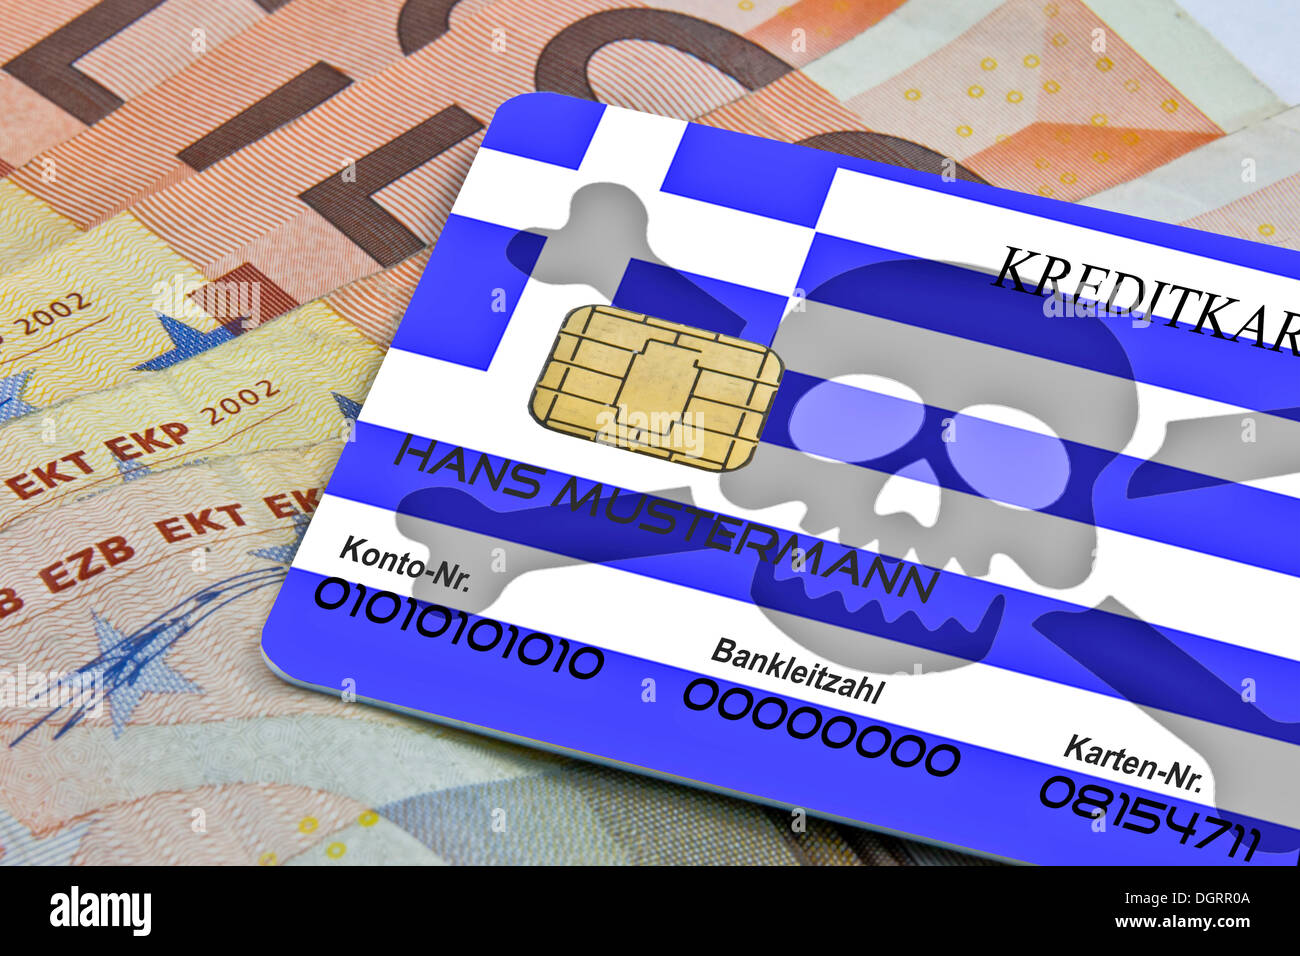 Credit card with a skull, as means of payment in Greece, insecure, questionable creditworthiness of Greece - Stock Image